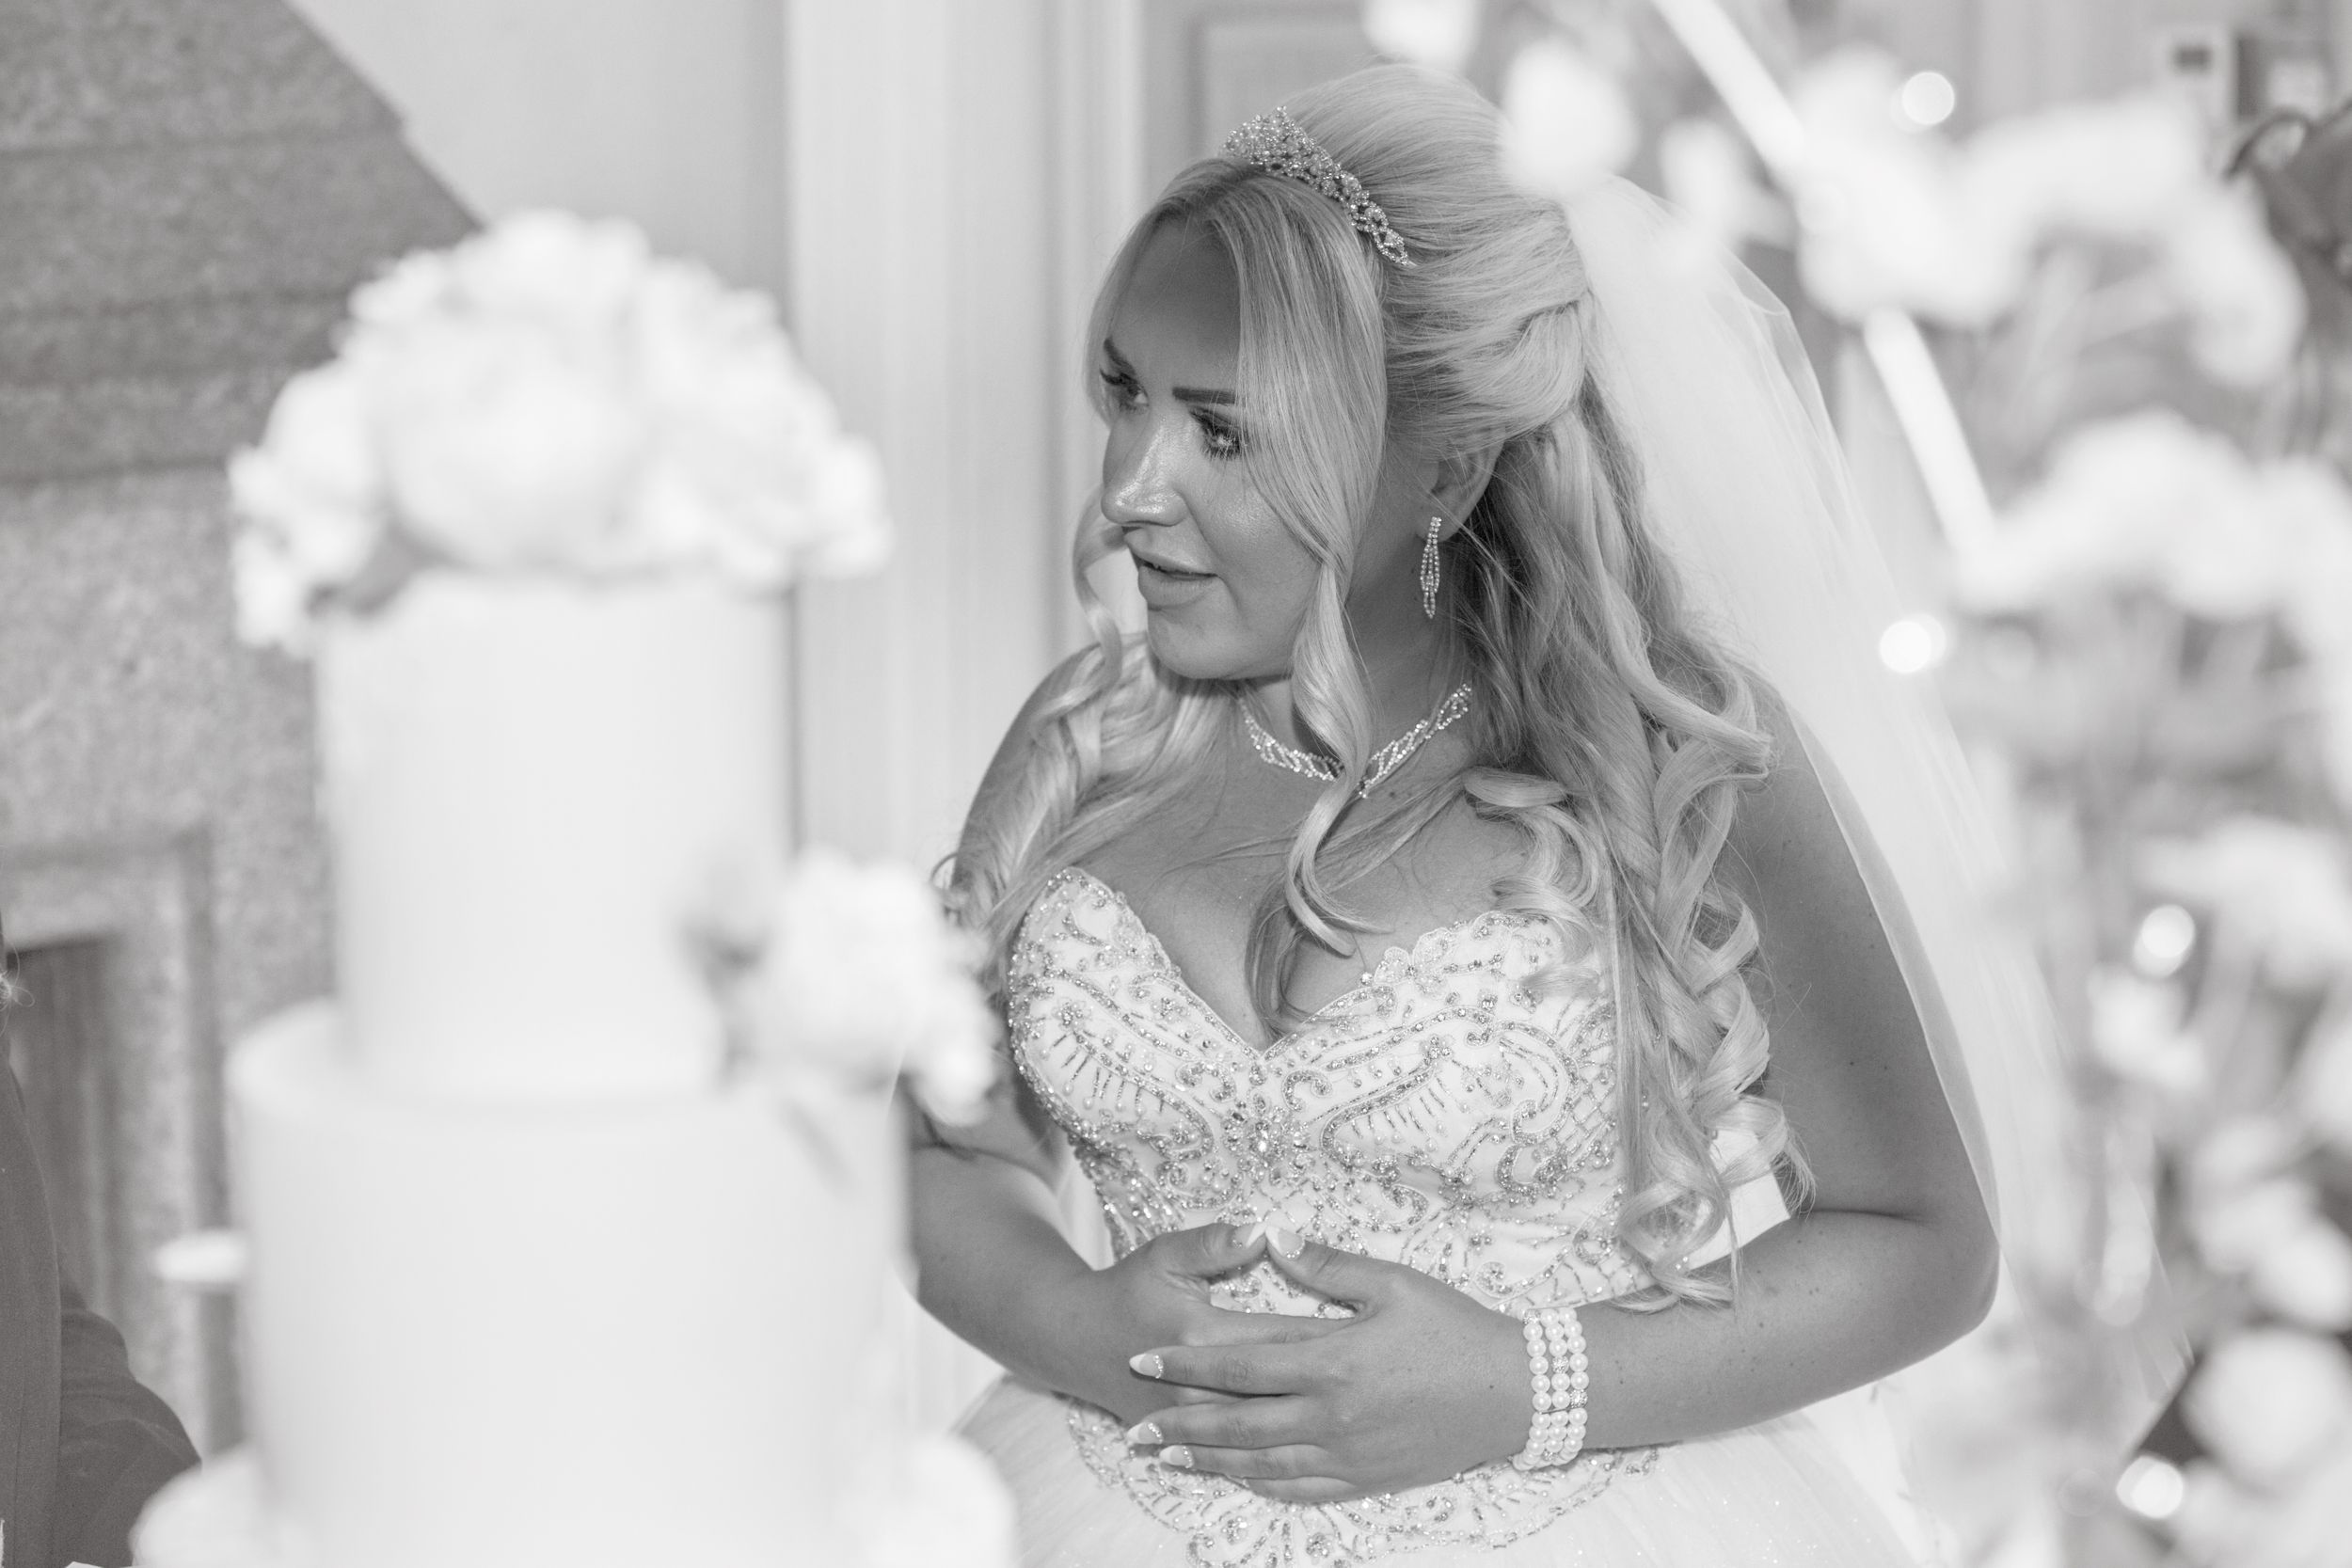 Black and white image of Bride with cake in soft focus in foreground